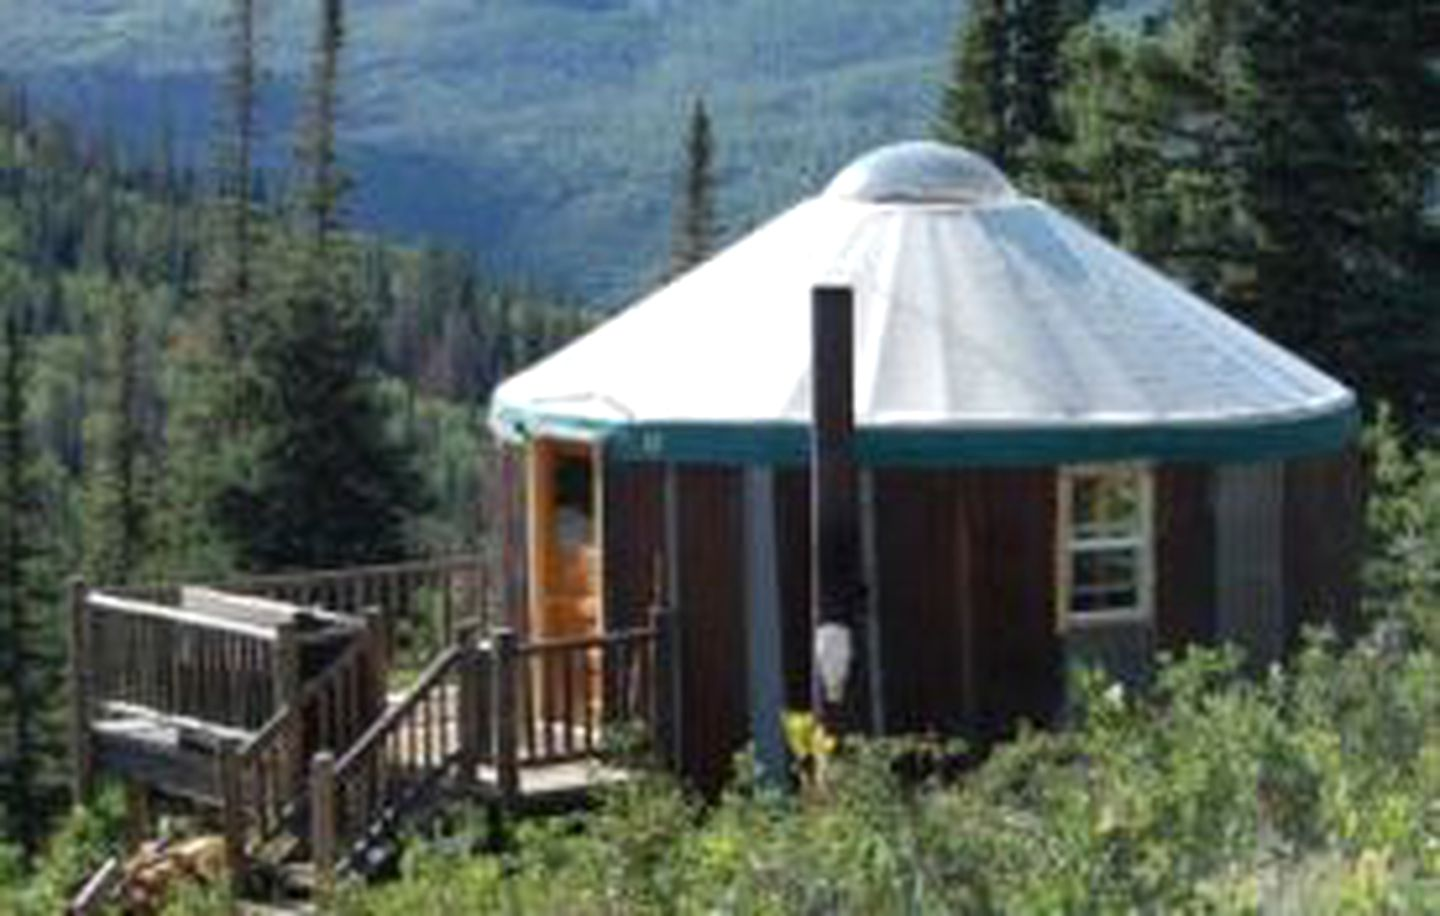 Yurts In Colorado Glamping In Colorado Find state of co homes_description_types_10_plu at the best price. cozy yurt at the gateway to the flat tops in colorado